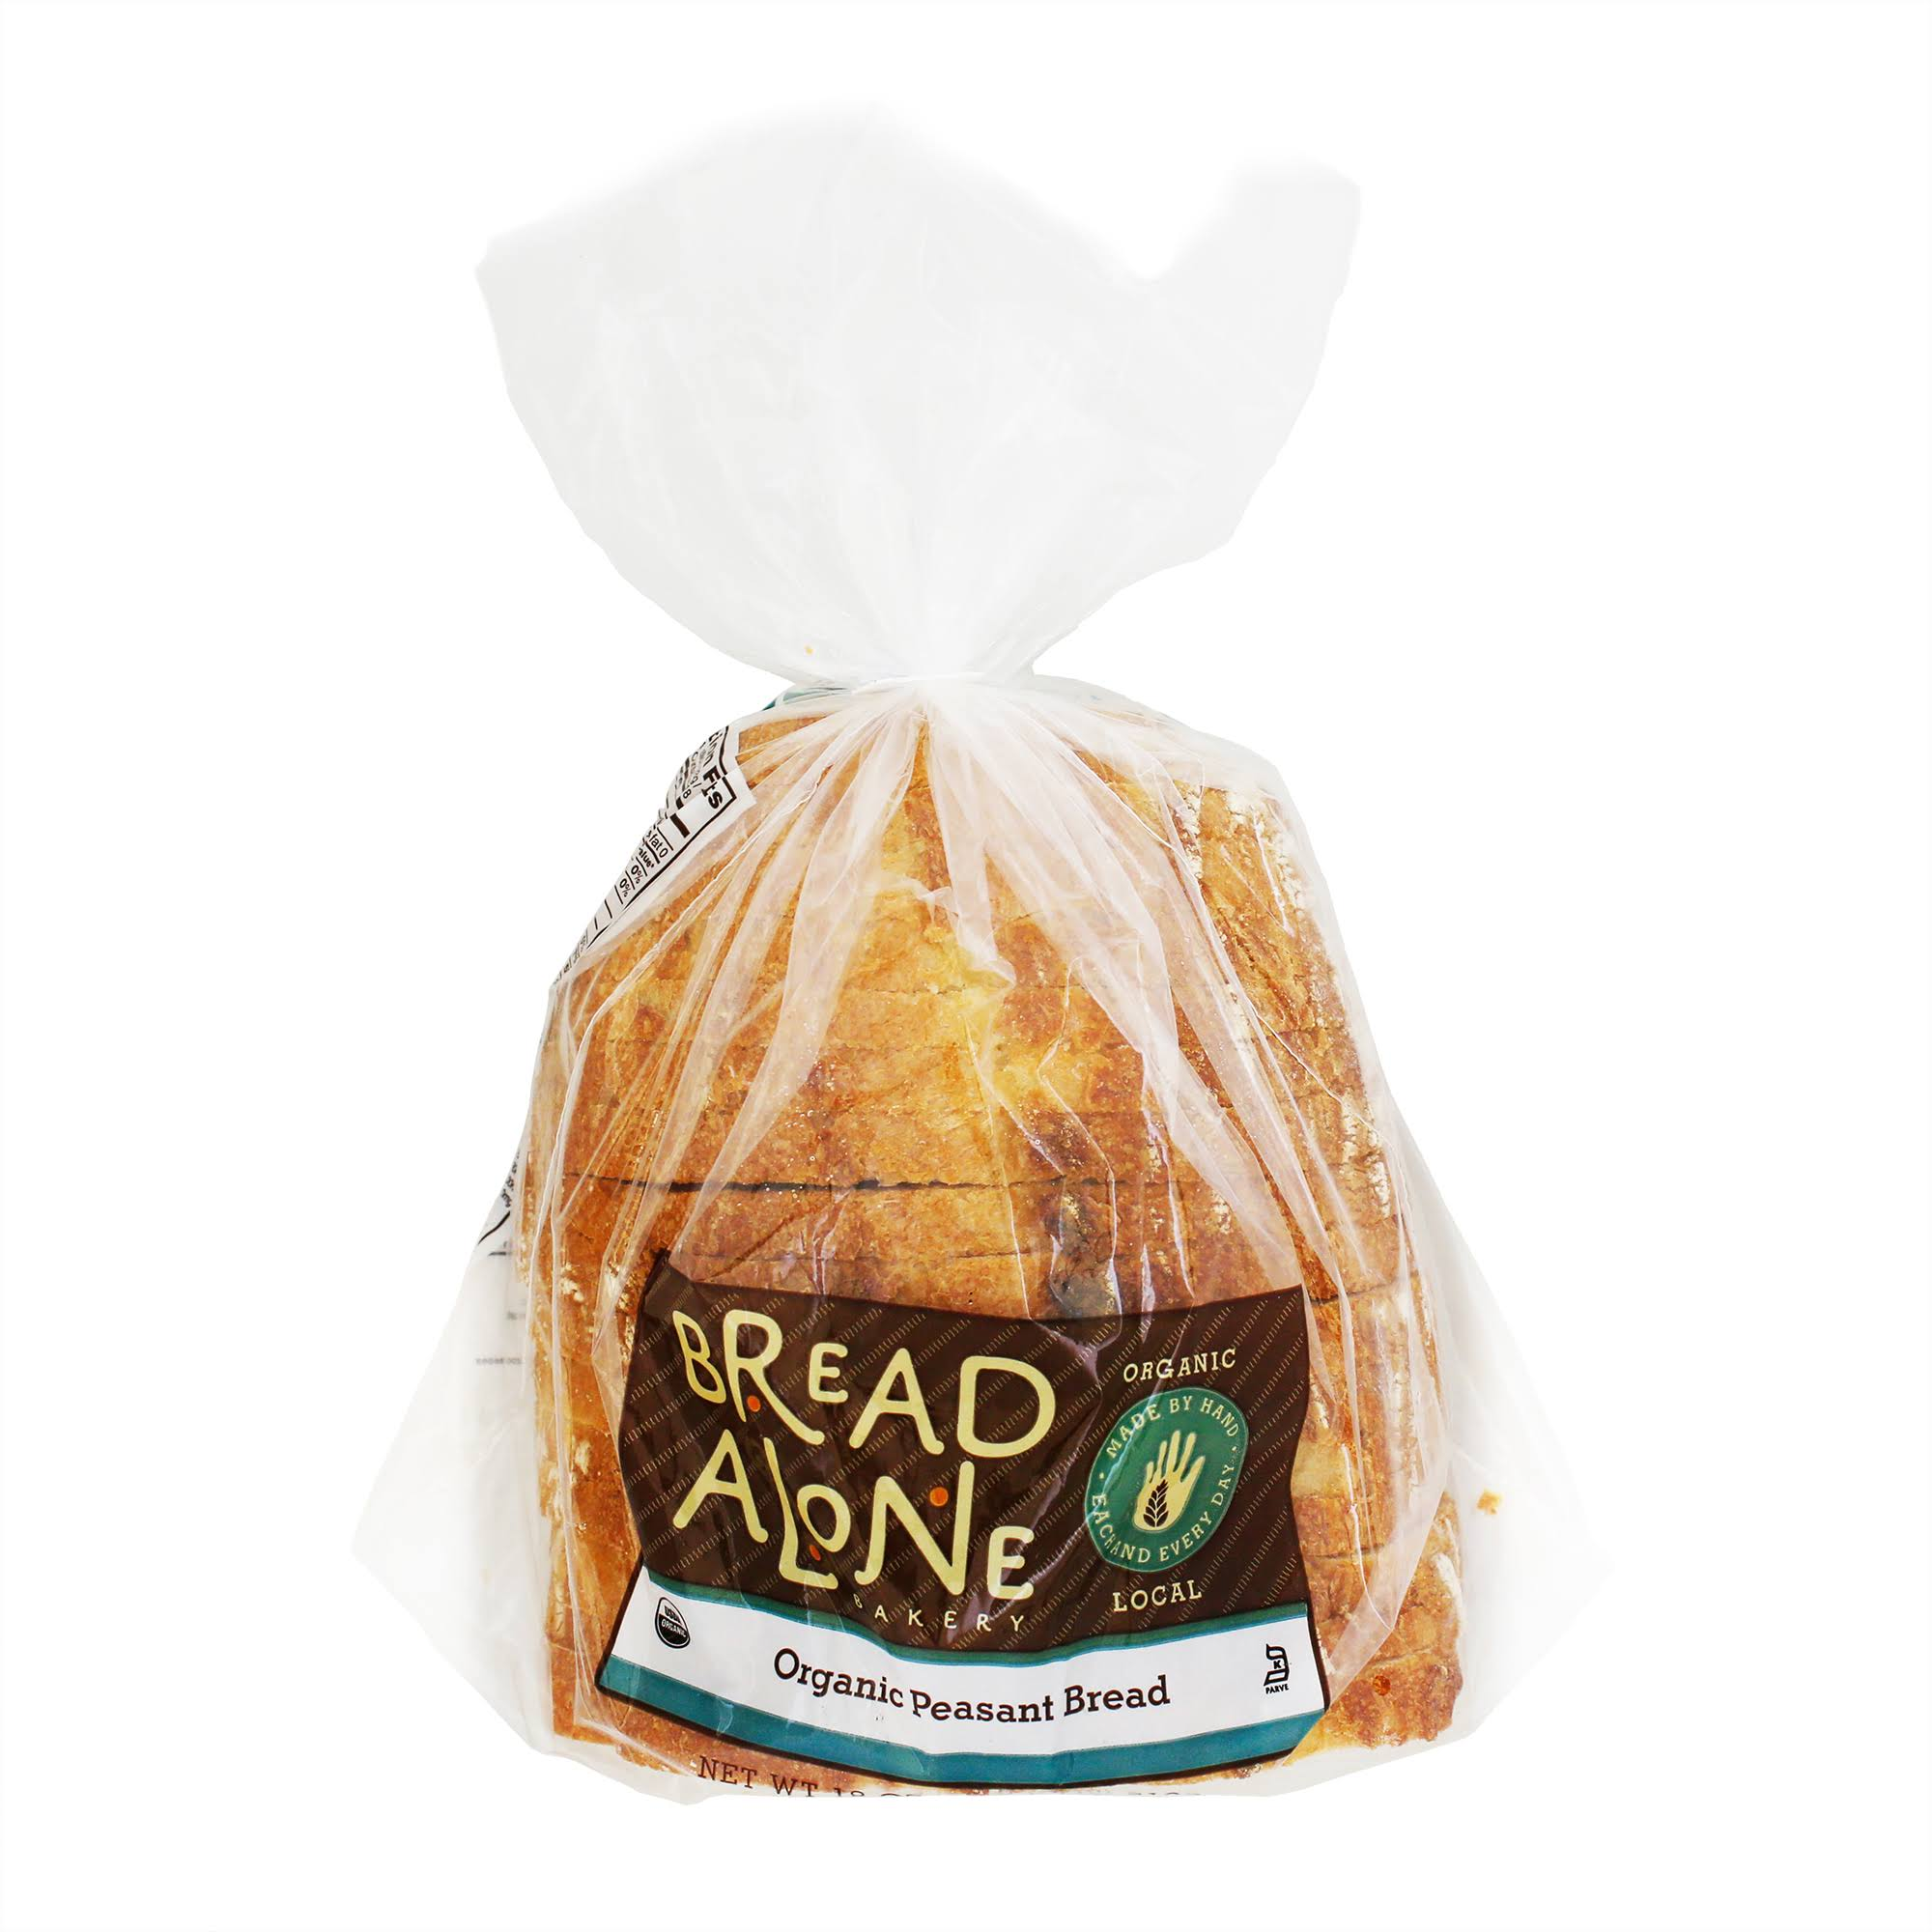 Bread Alone Bakery Bread, Organic, Peasant - 18 oz